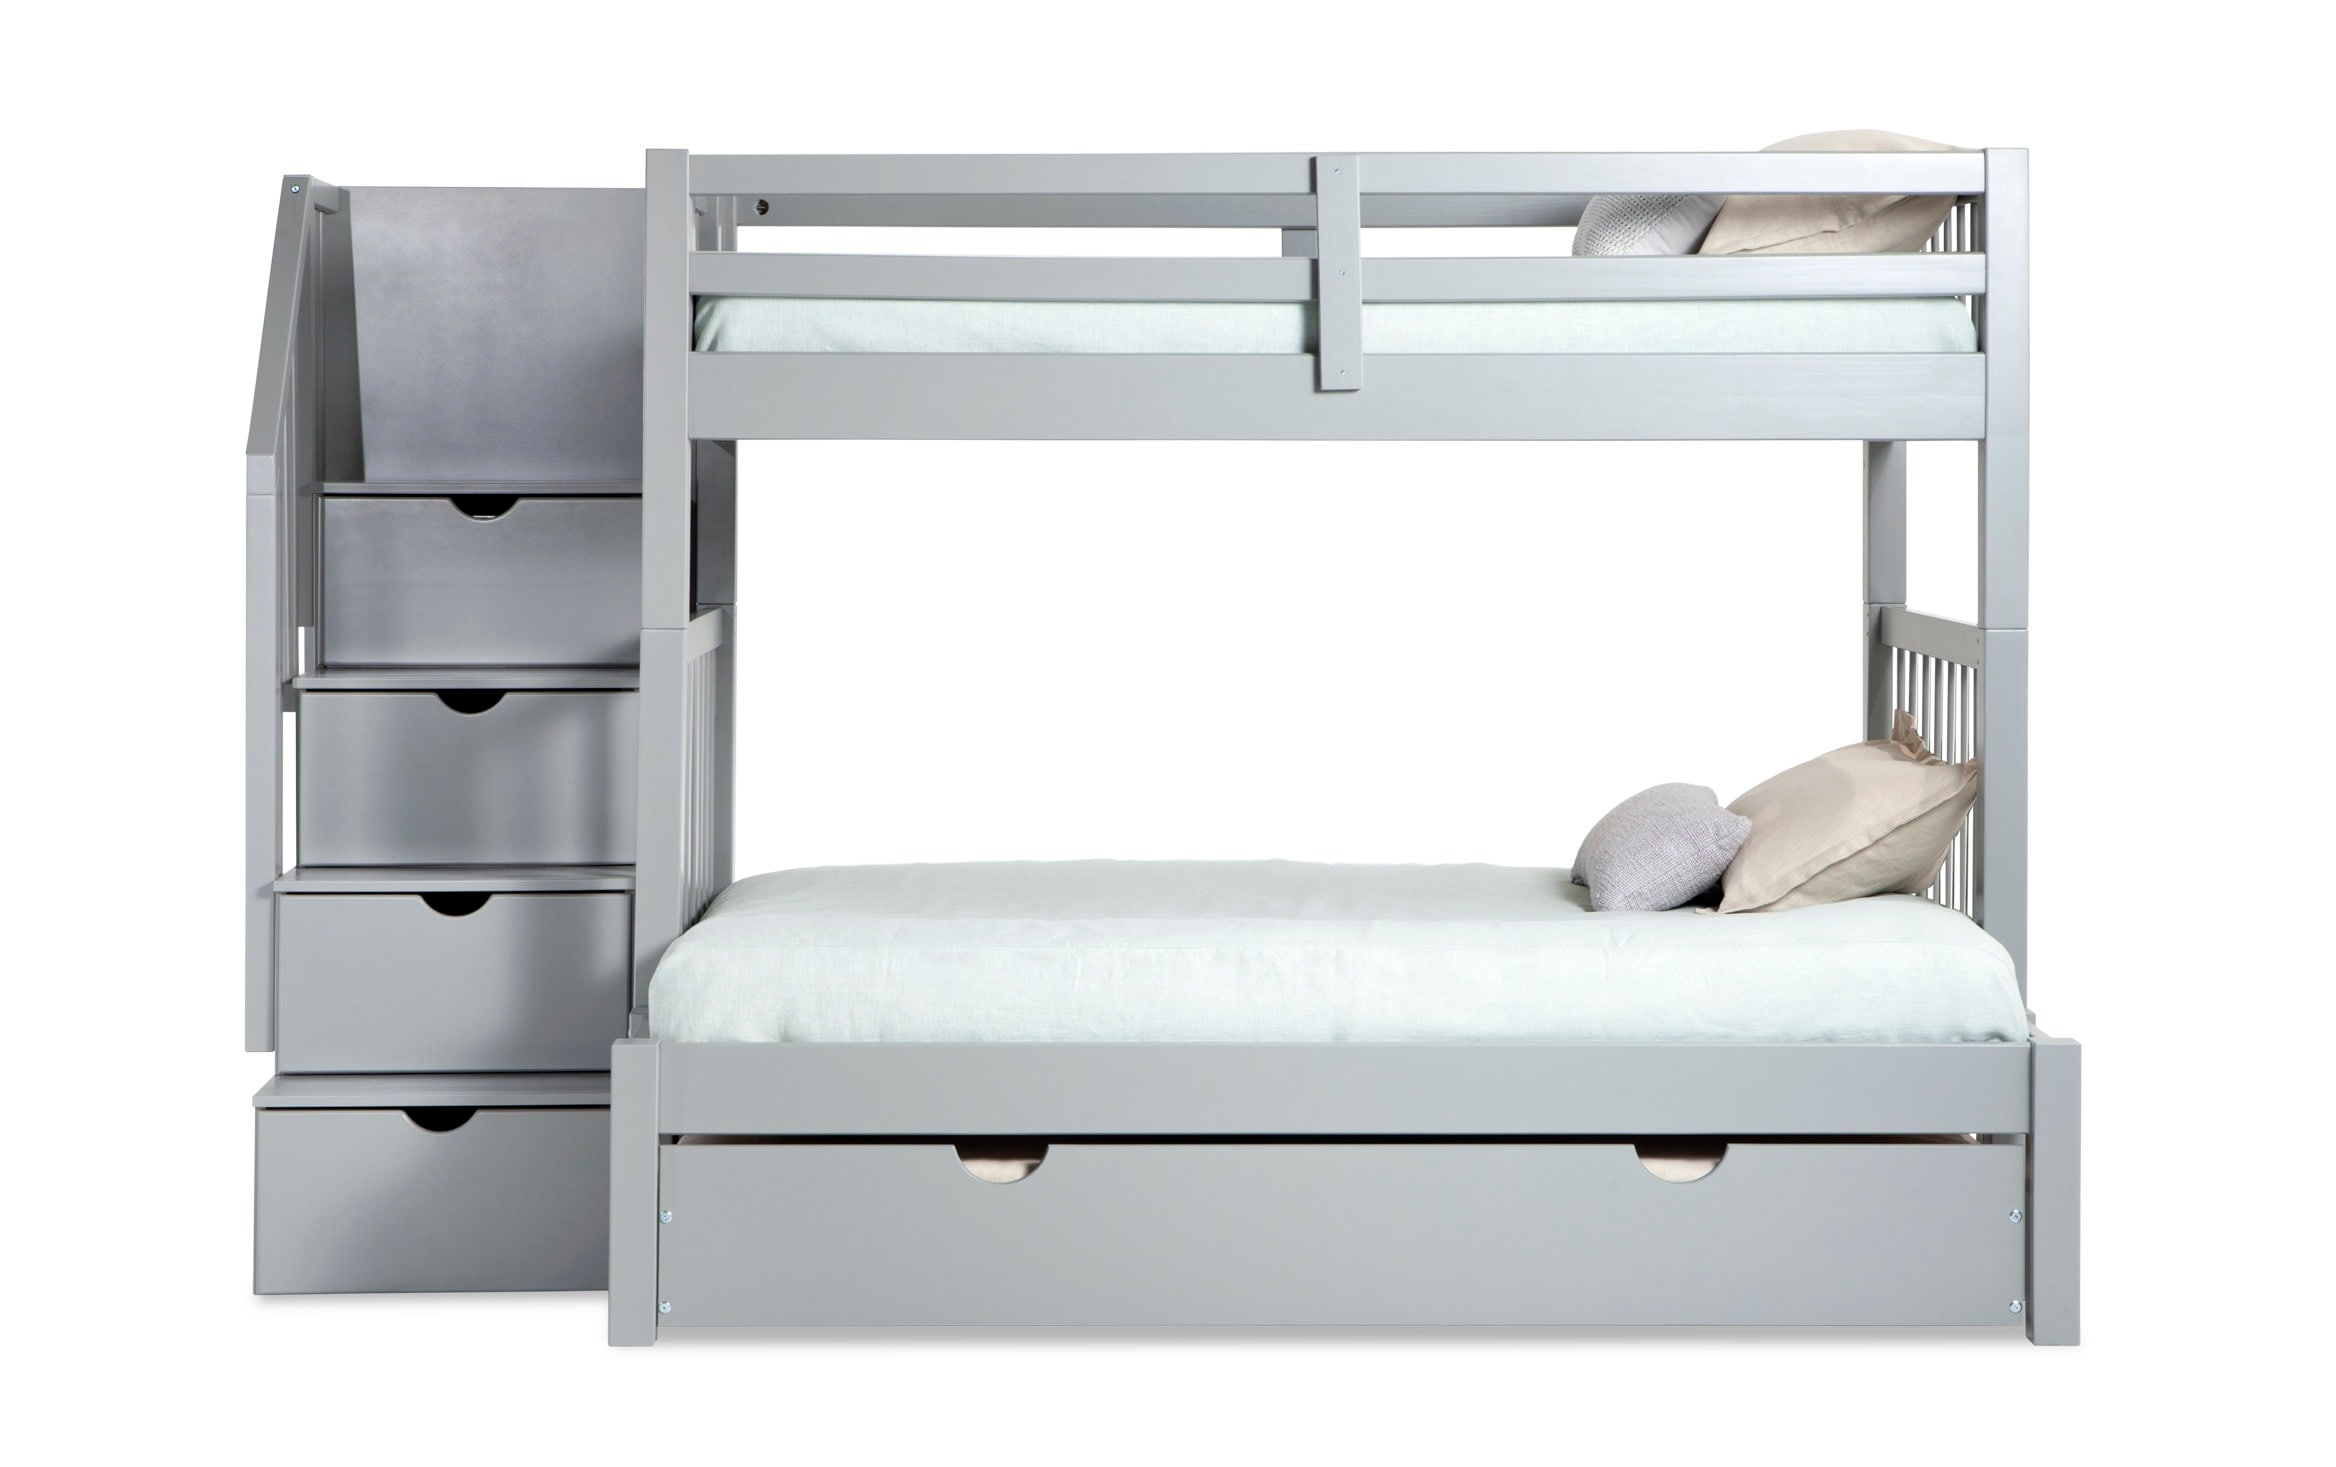 Full Beds With Trundle And Storage Laptrinhx News